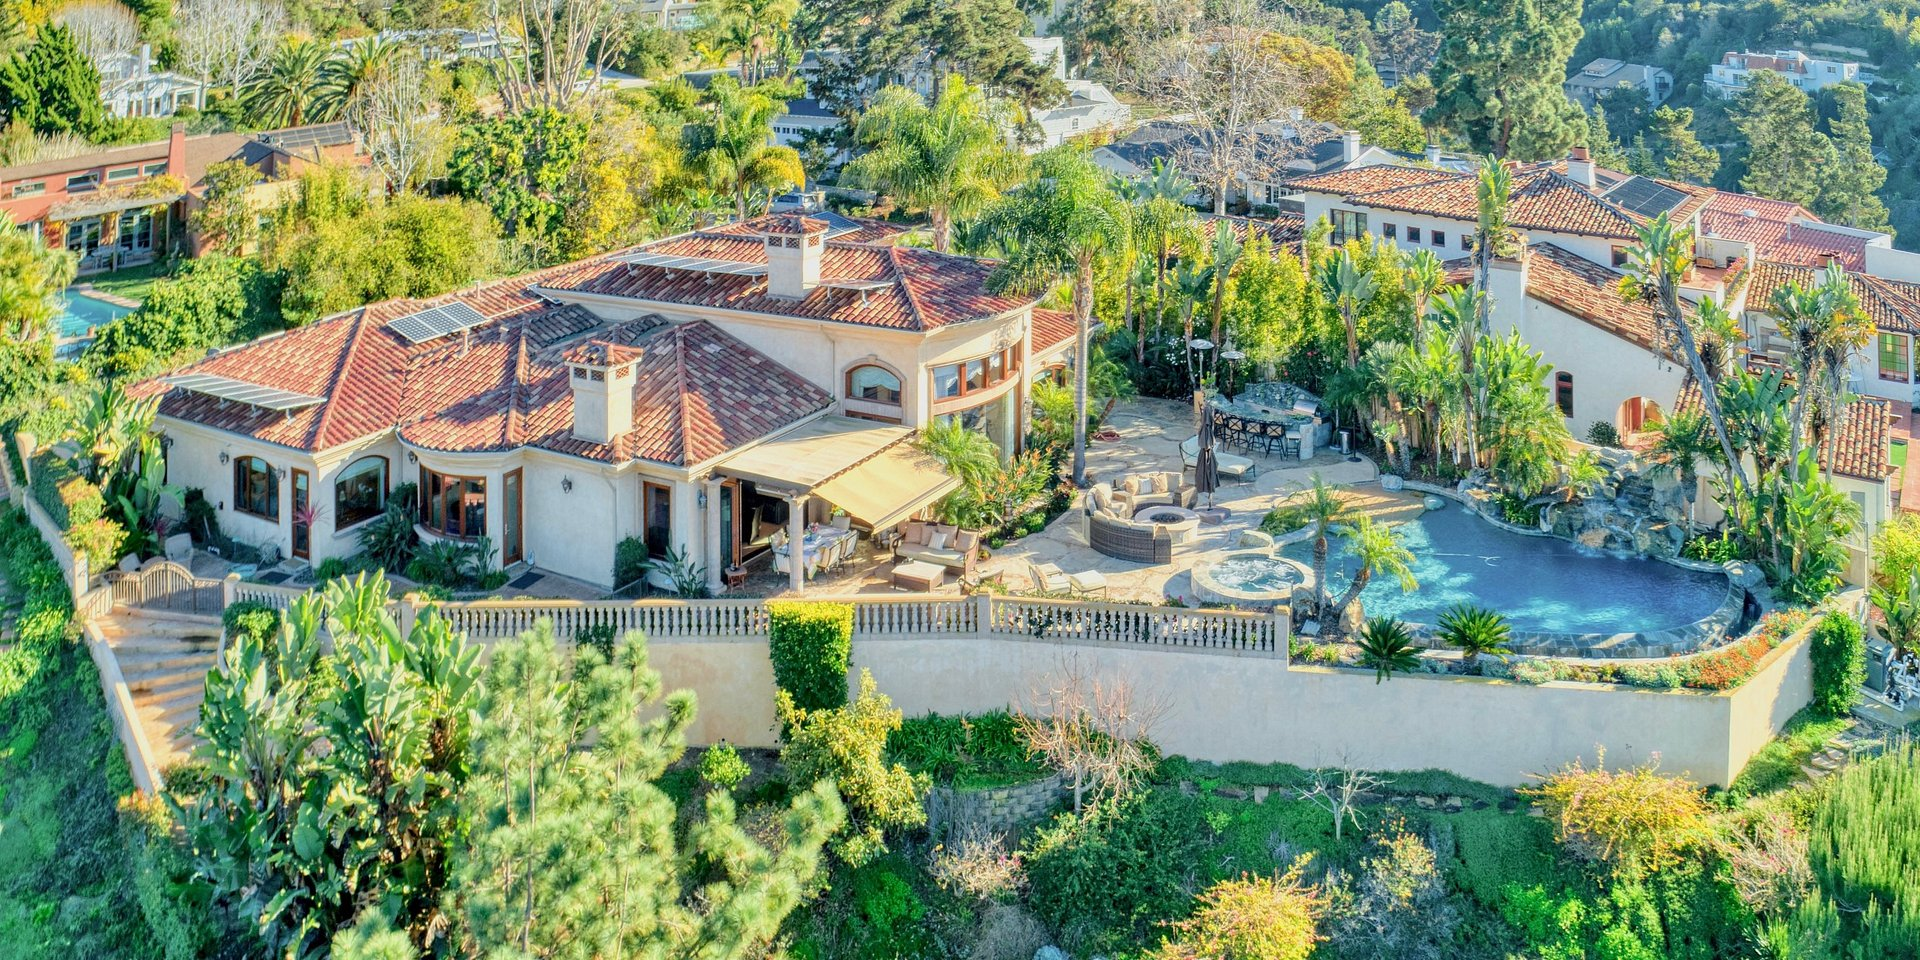 Coldwell Banker Residential Brokerage Lists La Jolla Property for $5.699 Million